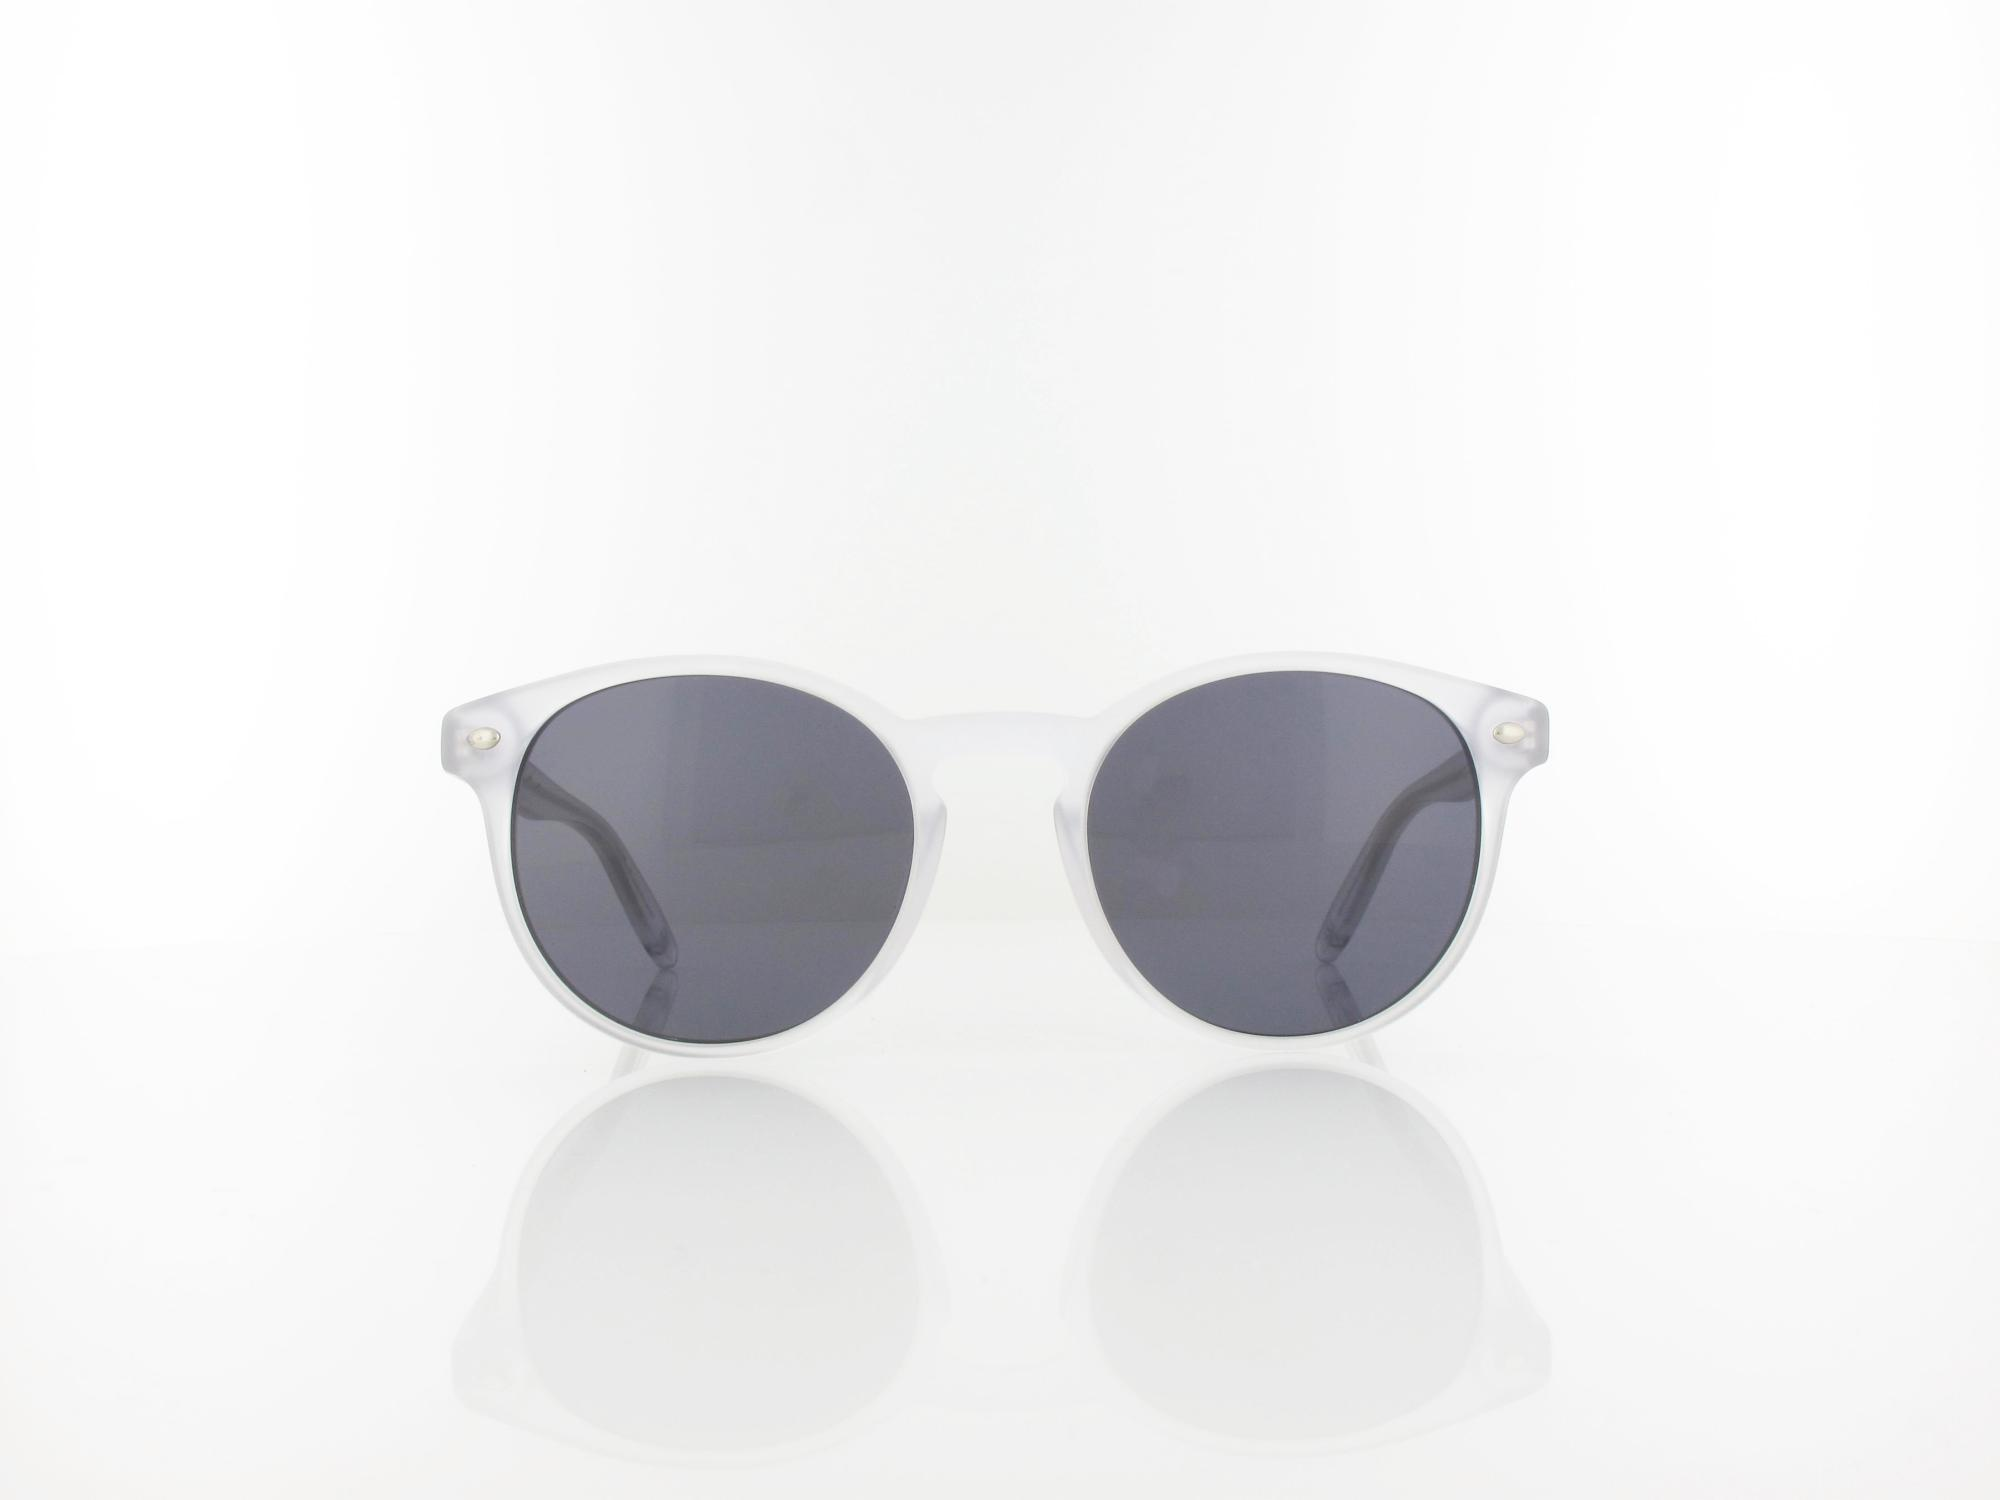 HIS | HS374-002 51 | crystal clear / grey